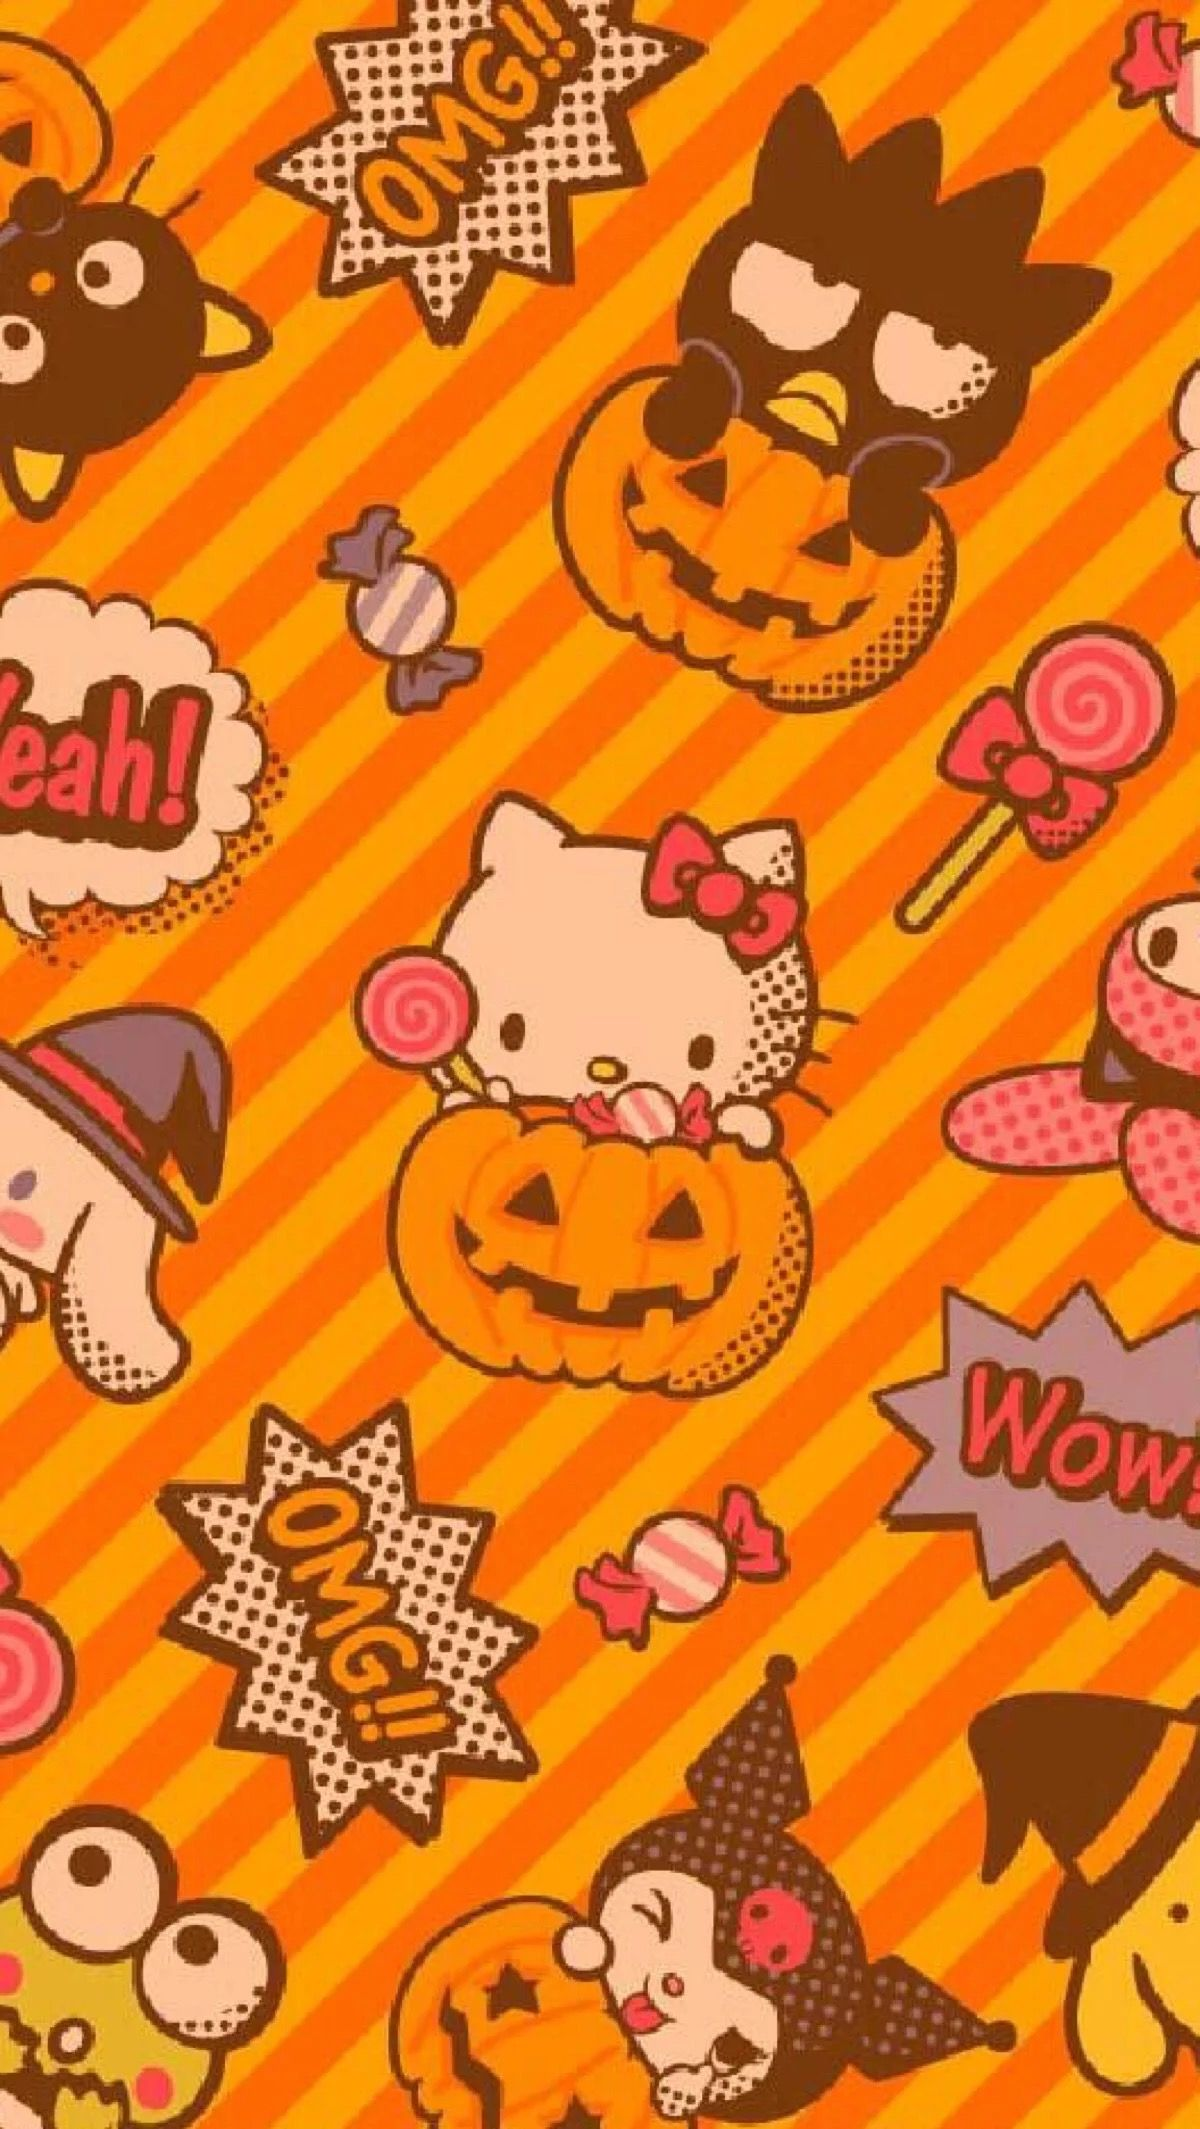 Cool Wallpaper Hello Kitty Halloween - 88dccf1ca106fa7138b1ecb44042b09b  Gallery_121198.jpg